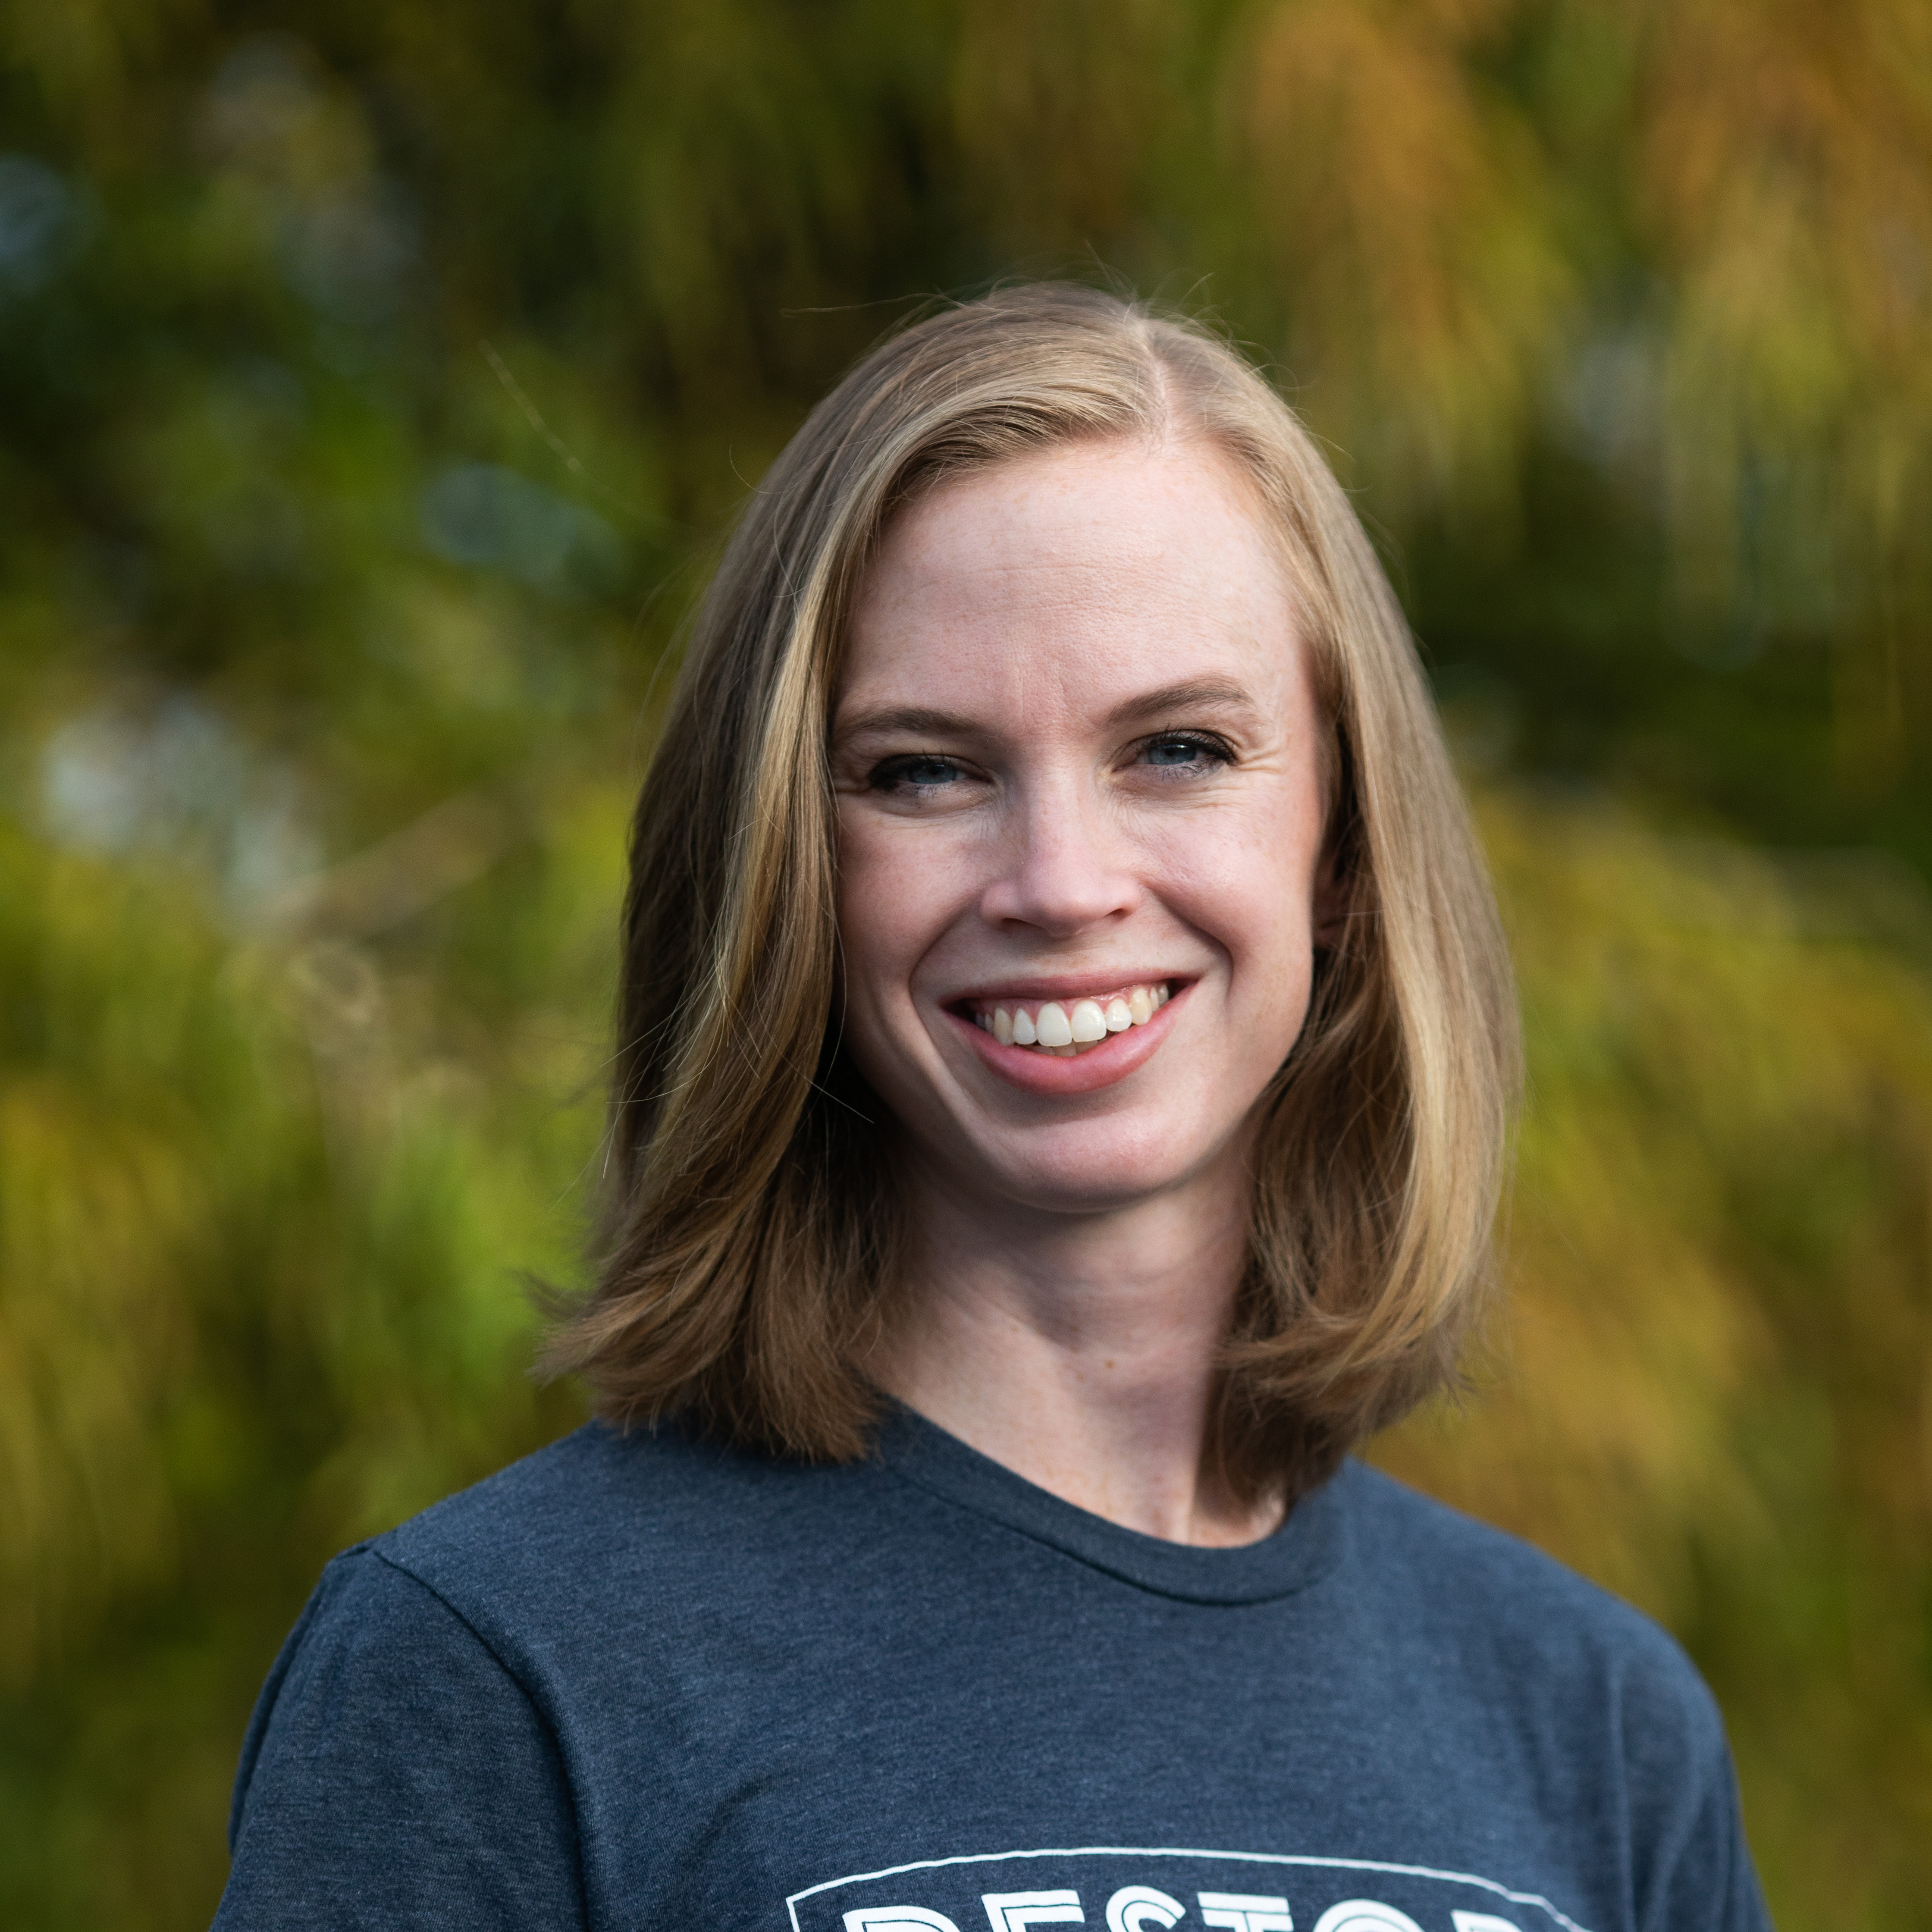 Anna Gann is a Doctor of Physical Therapy located in Lynn Haven and Panama City FL. Working at Restore Physical Therapy an outpatient physical therapy clinic.